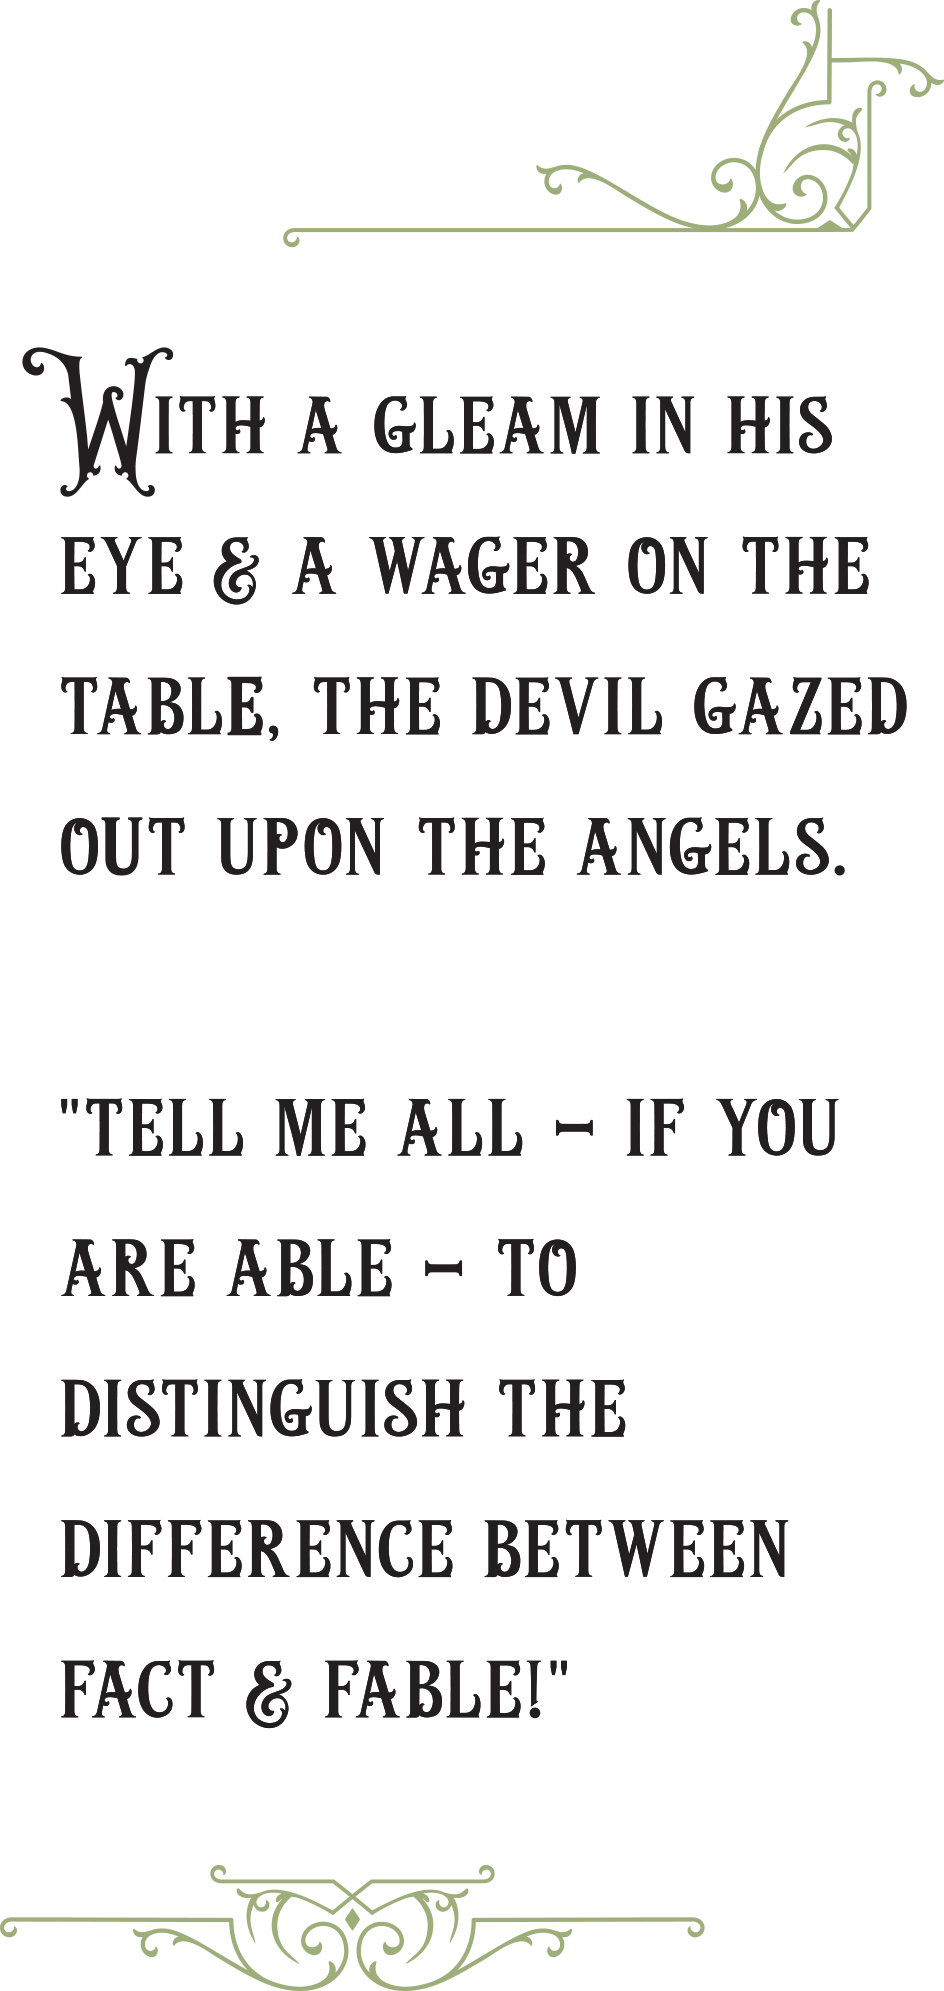 With a gleam in his eye & a wager on the table, the devil gazed out upon the angels.